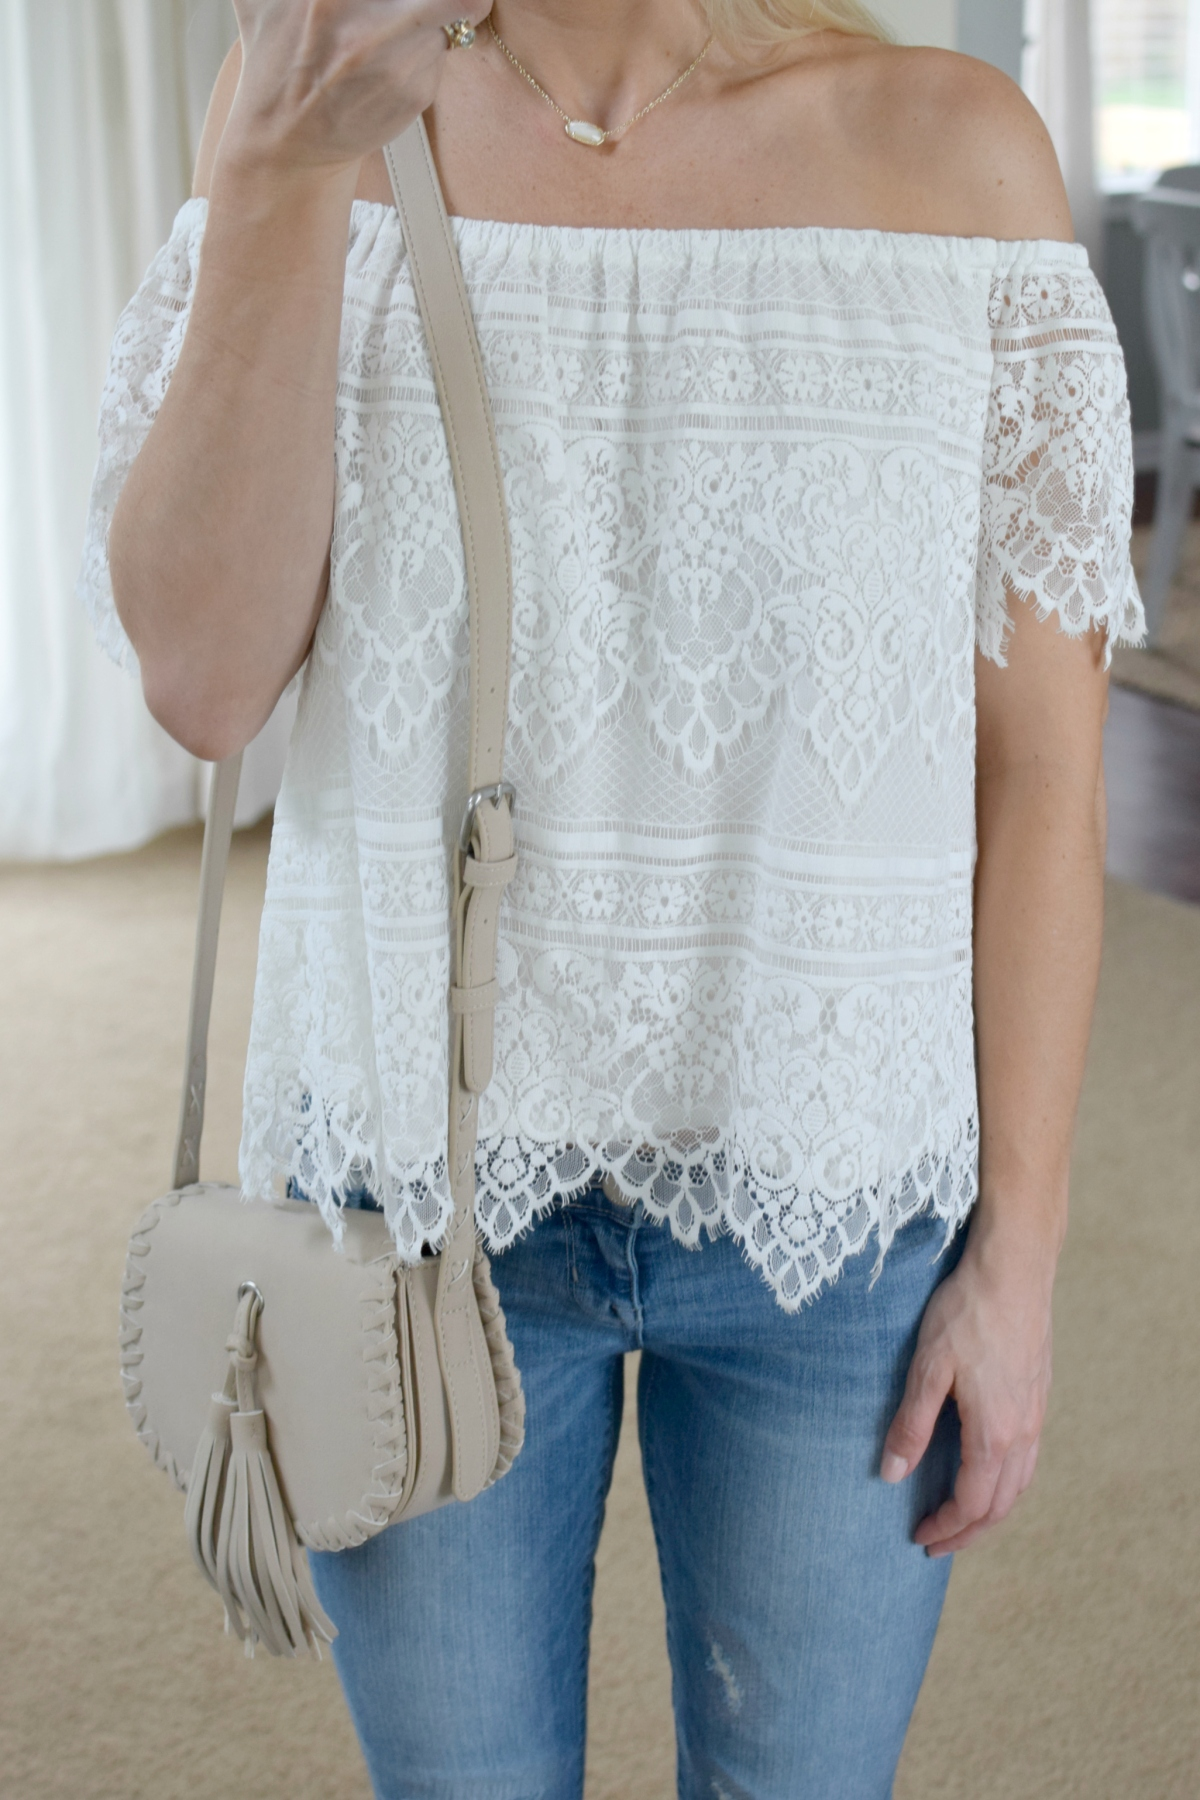 lacey off the shoulder, destroyed crops, white wedges, and fringe purse |www.pearlsandsportsbras.com|